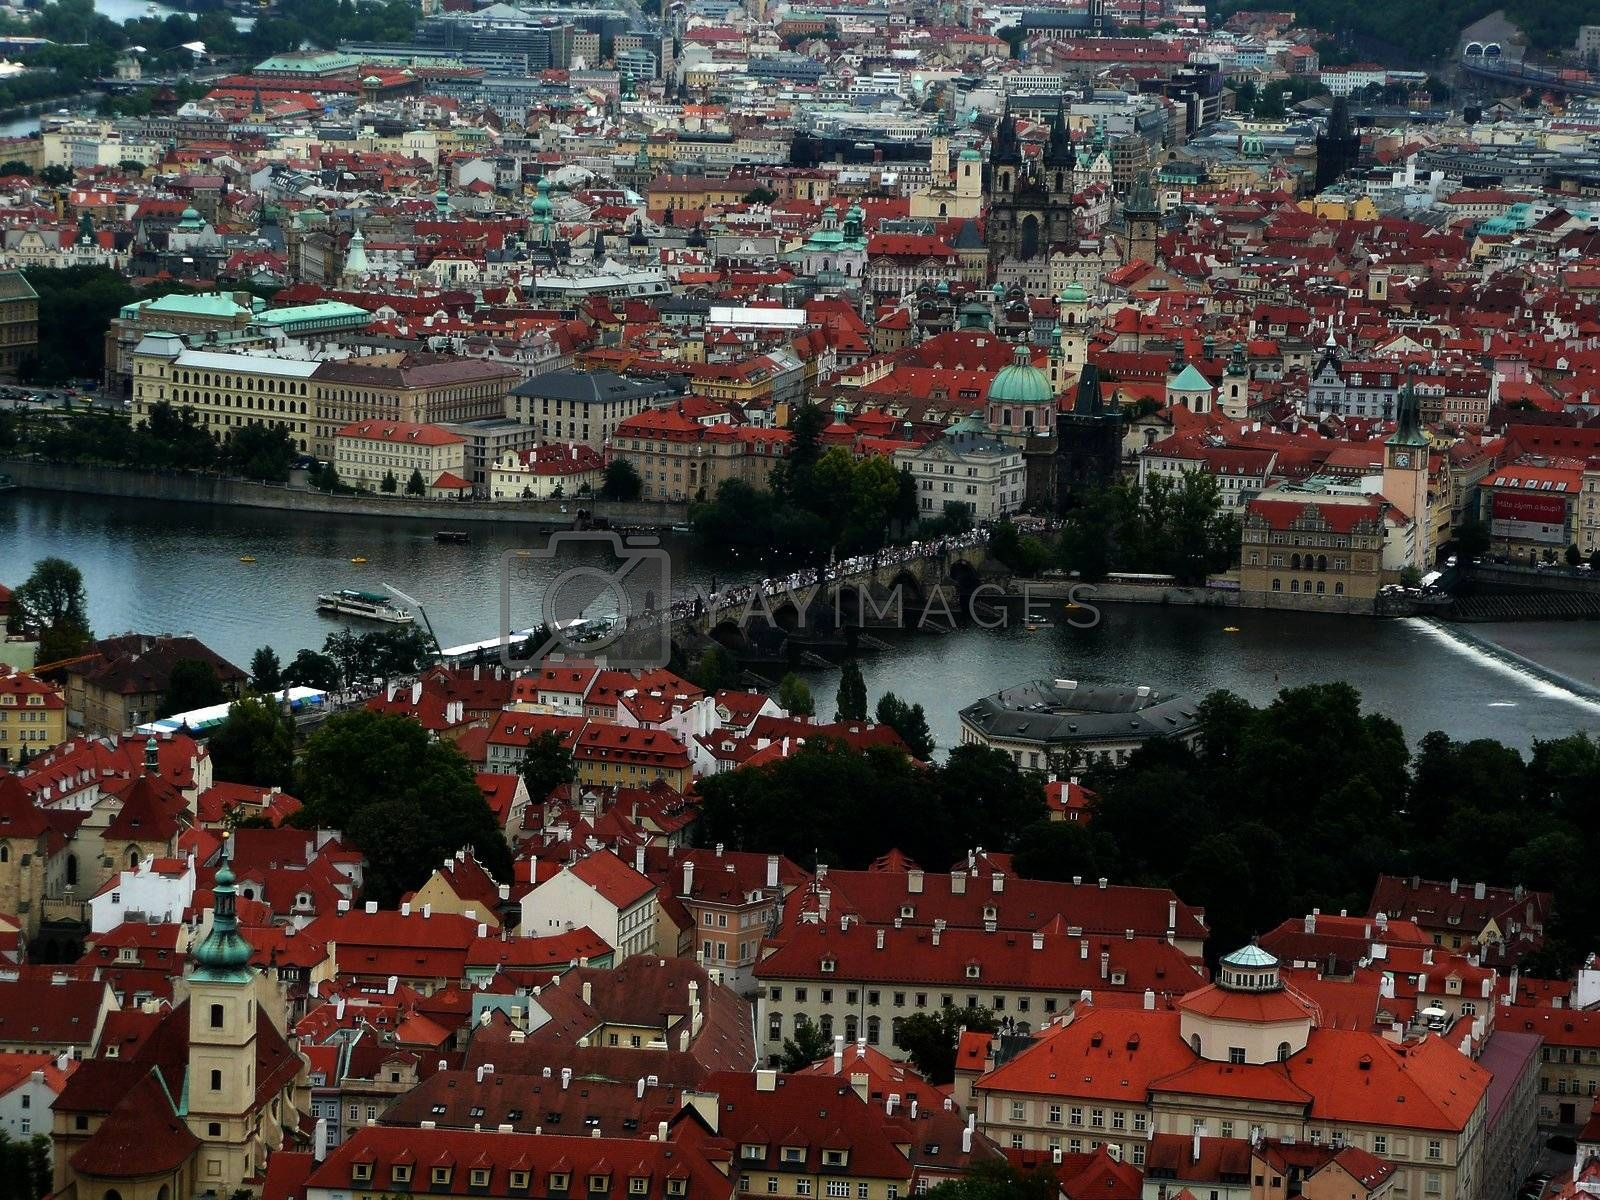 Panoramic view of Prague and city bridges, Czech Republic by Marco Rubino